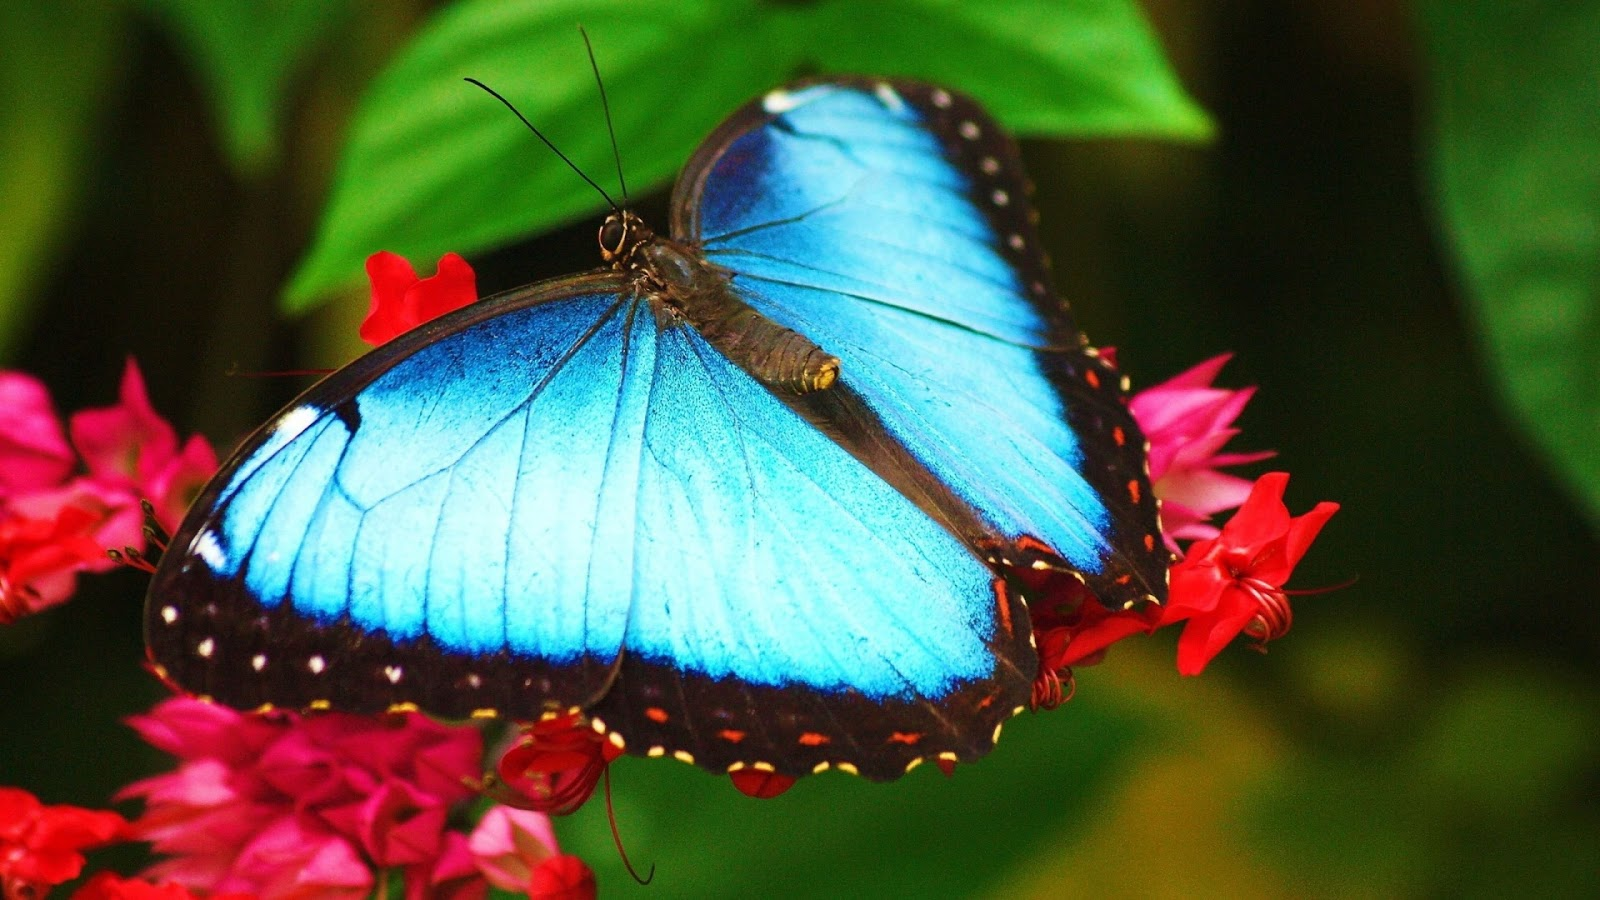 Butterflies Wallpapers Hd Download: All Wallpapers: Butterfly Hd Wallpapers 2013